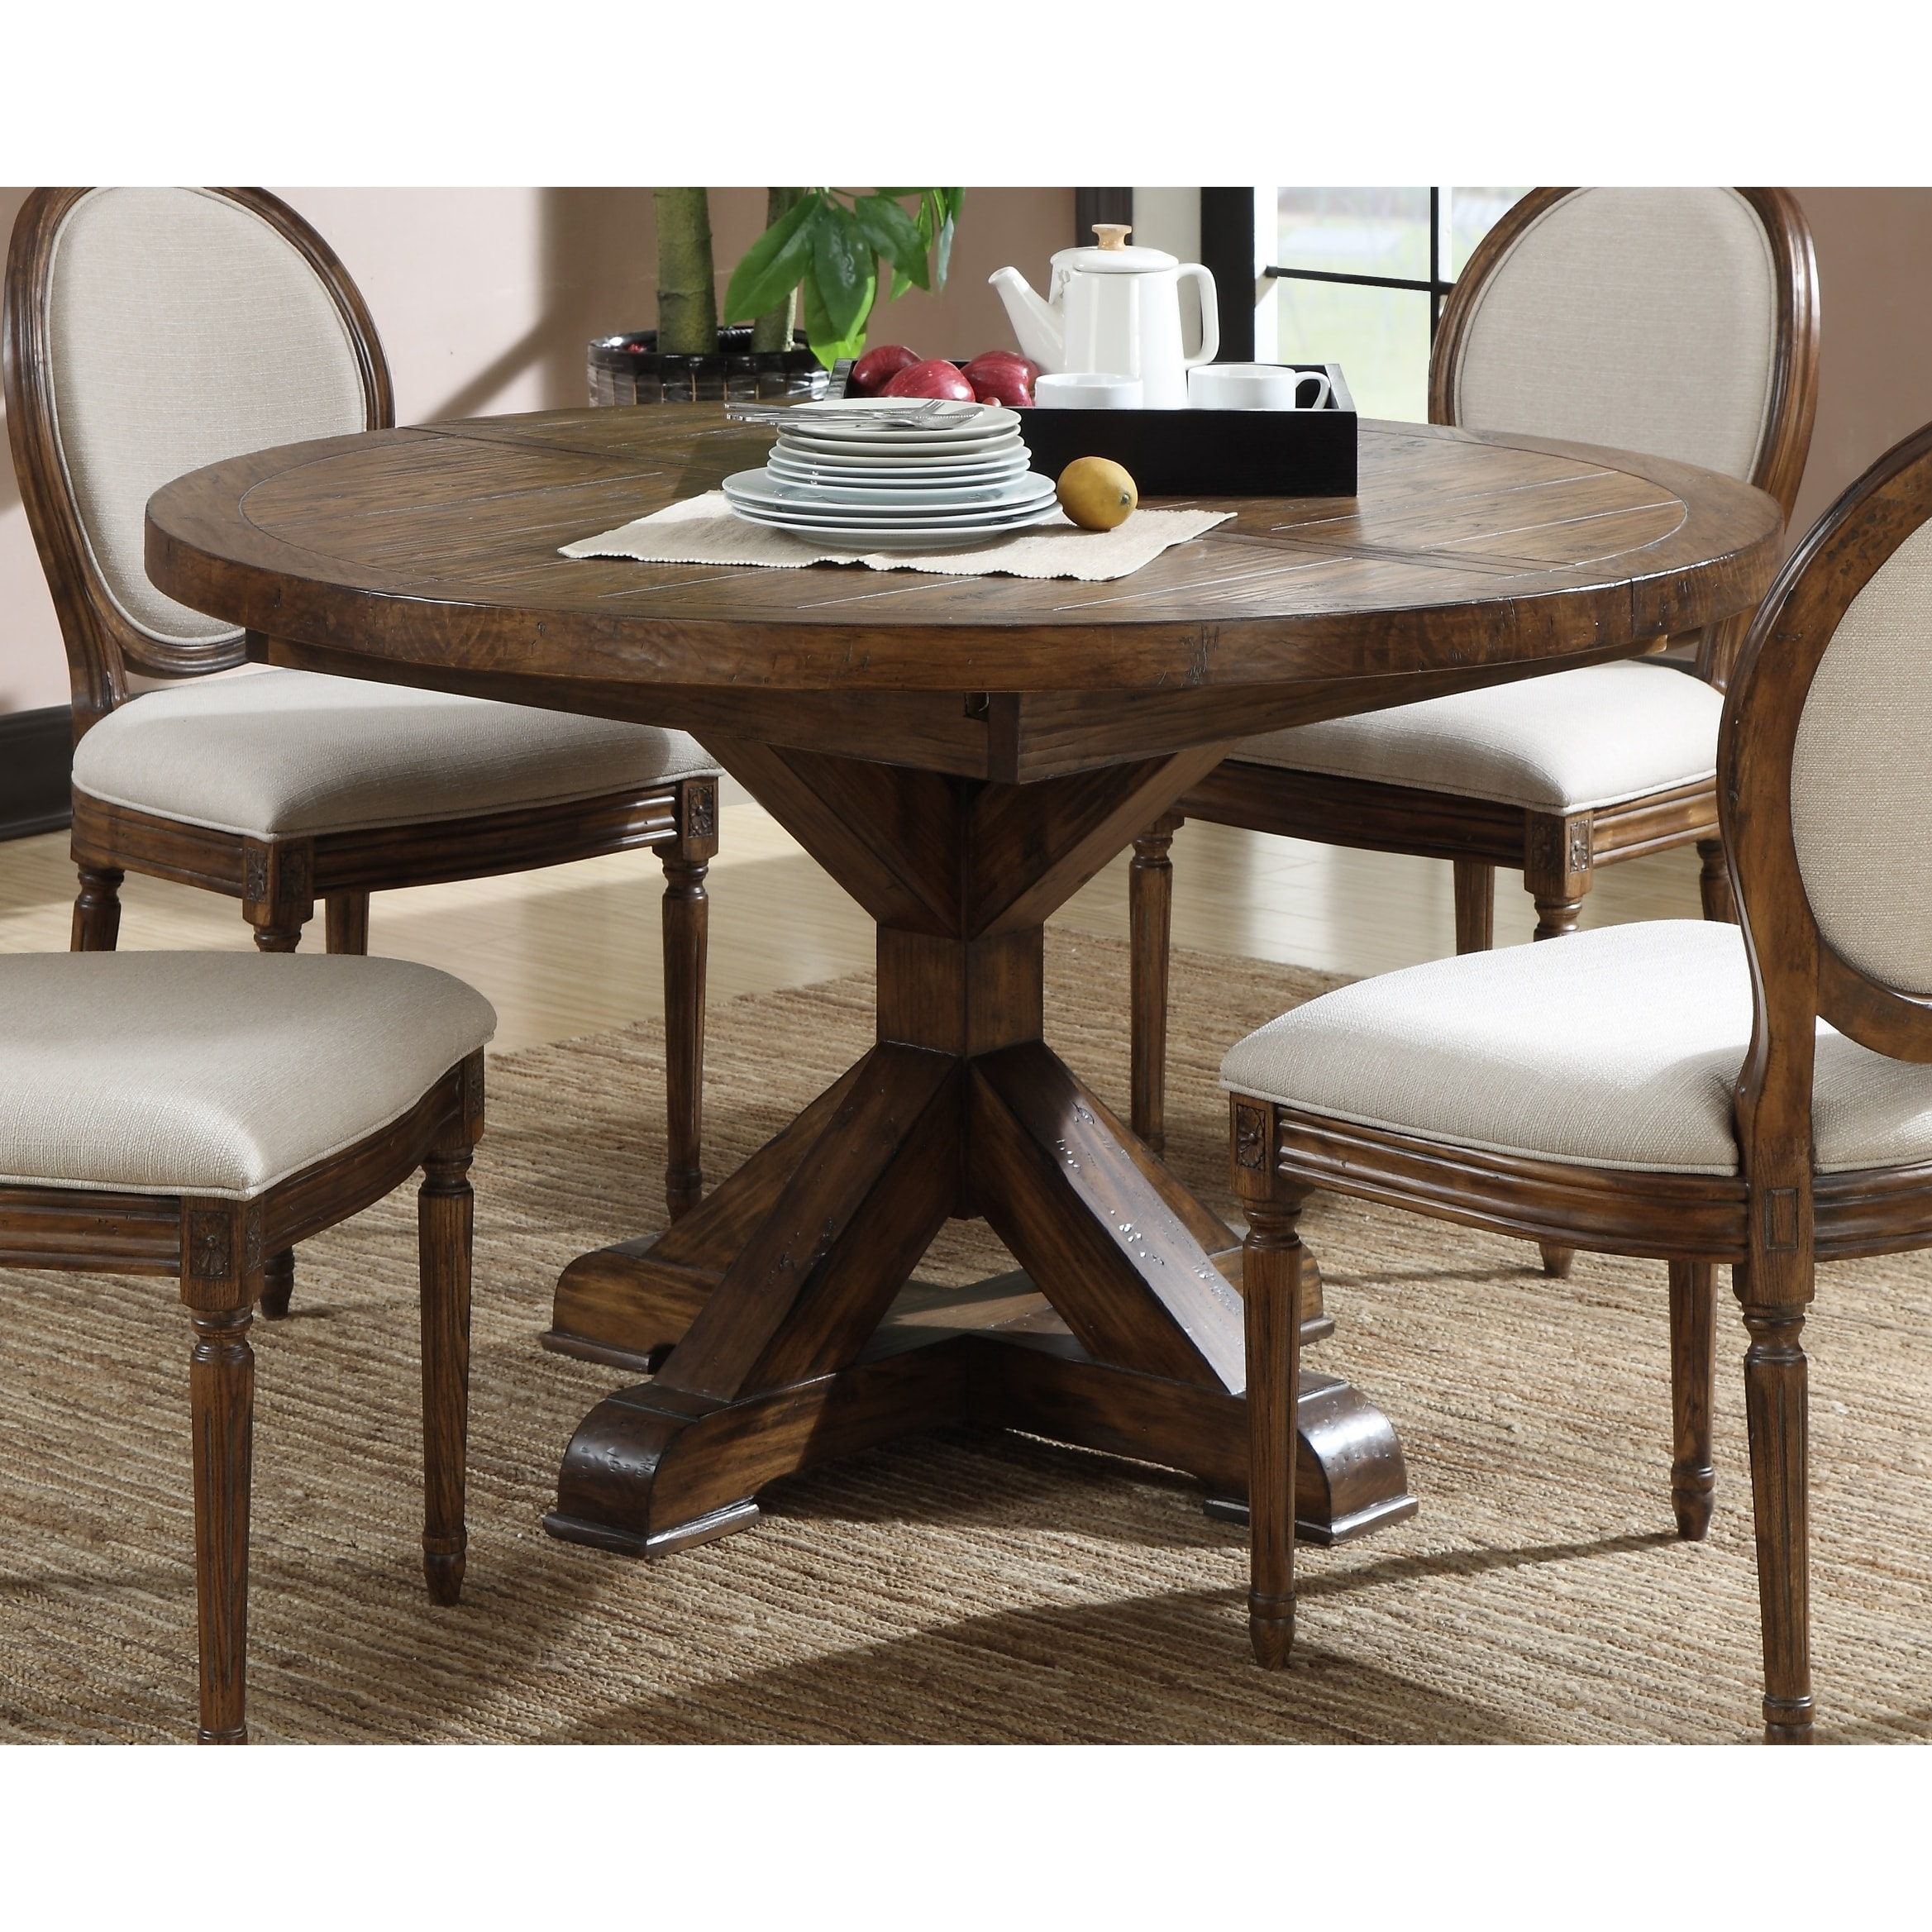 Shop The Gray Barn Misty Day Dark Pine 54 Inch Round Dining Table Overstock 9358892